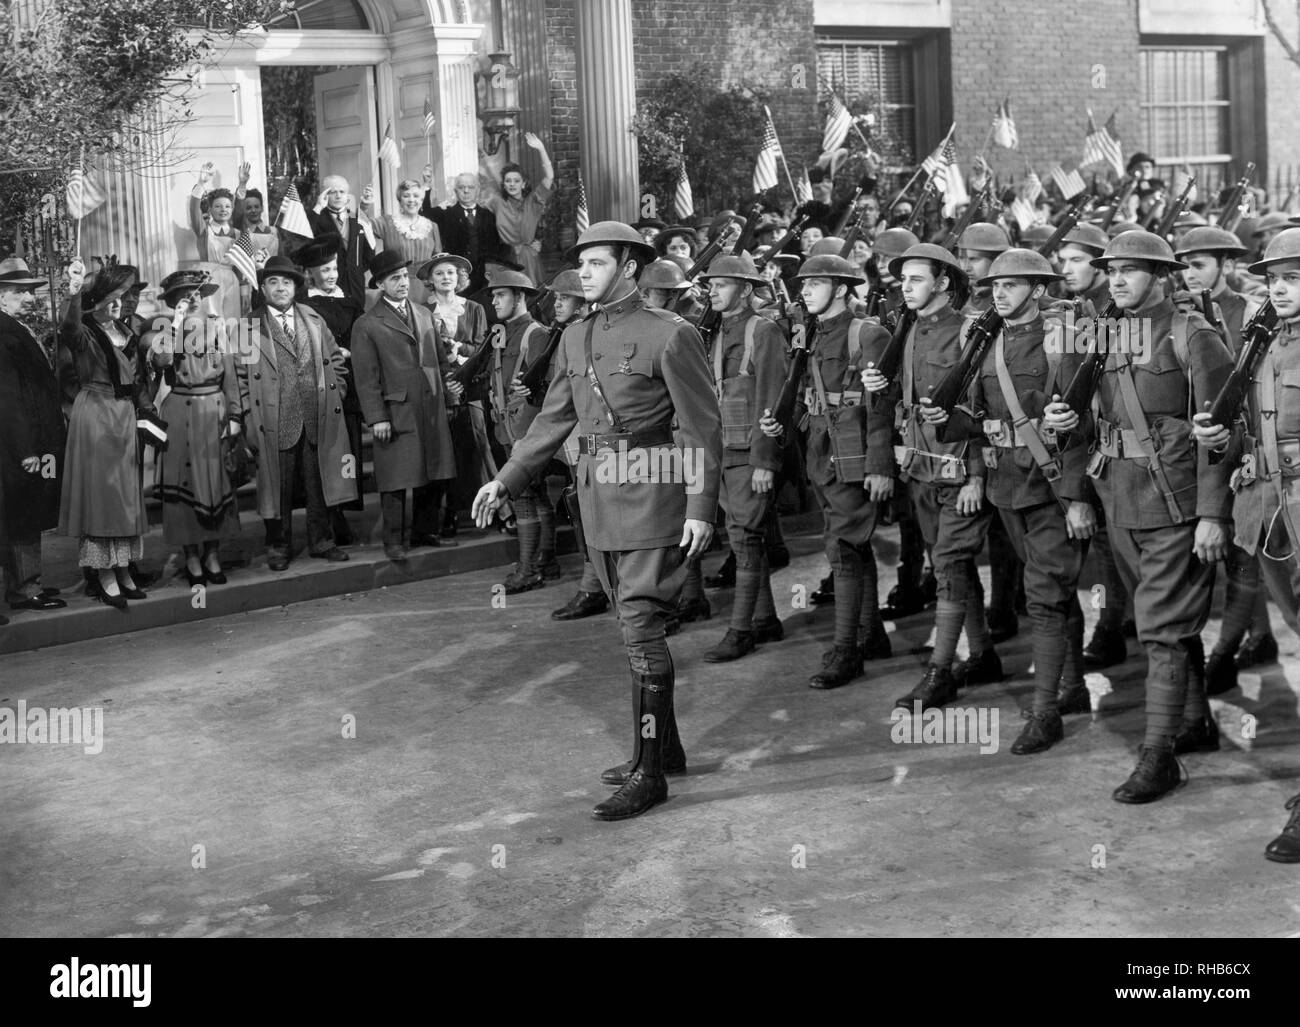 James Craig (center leading March), on-set of the Film, 'Friendly Enemies', United Artists, 1942 - Stock Image